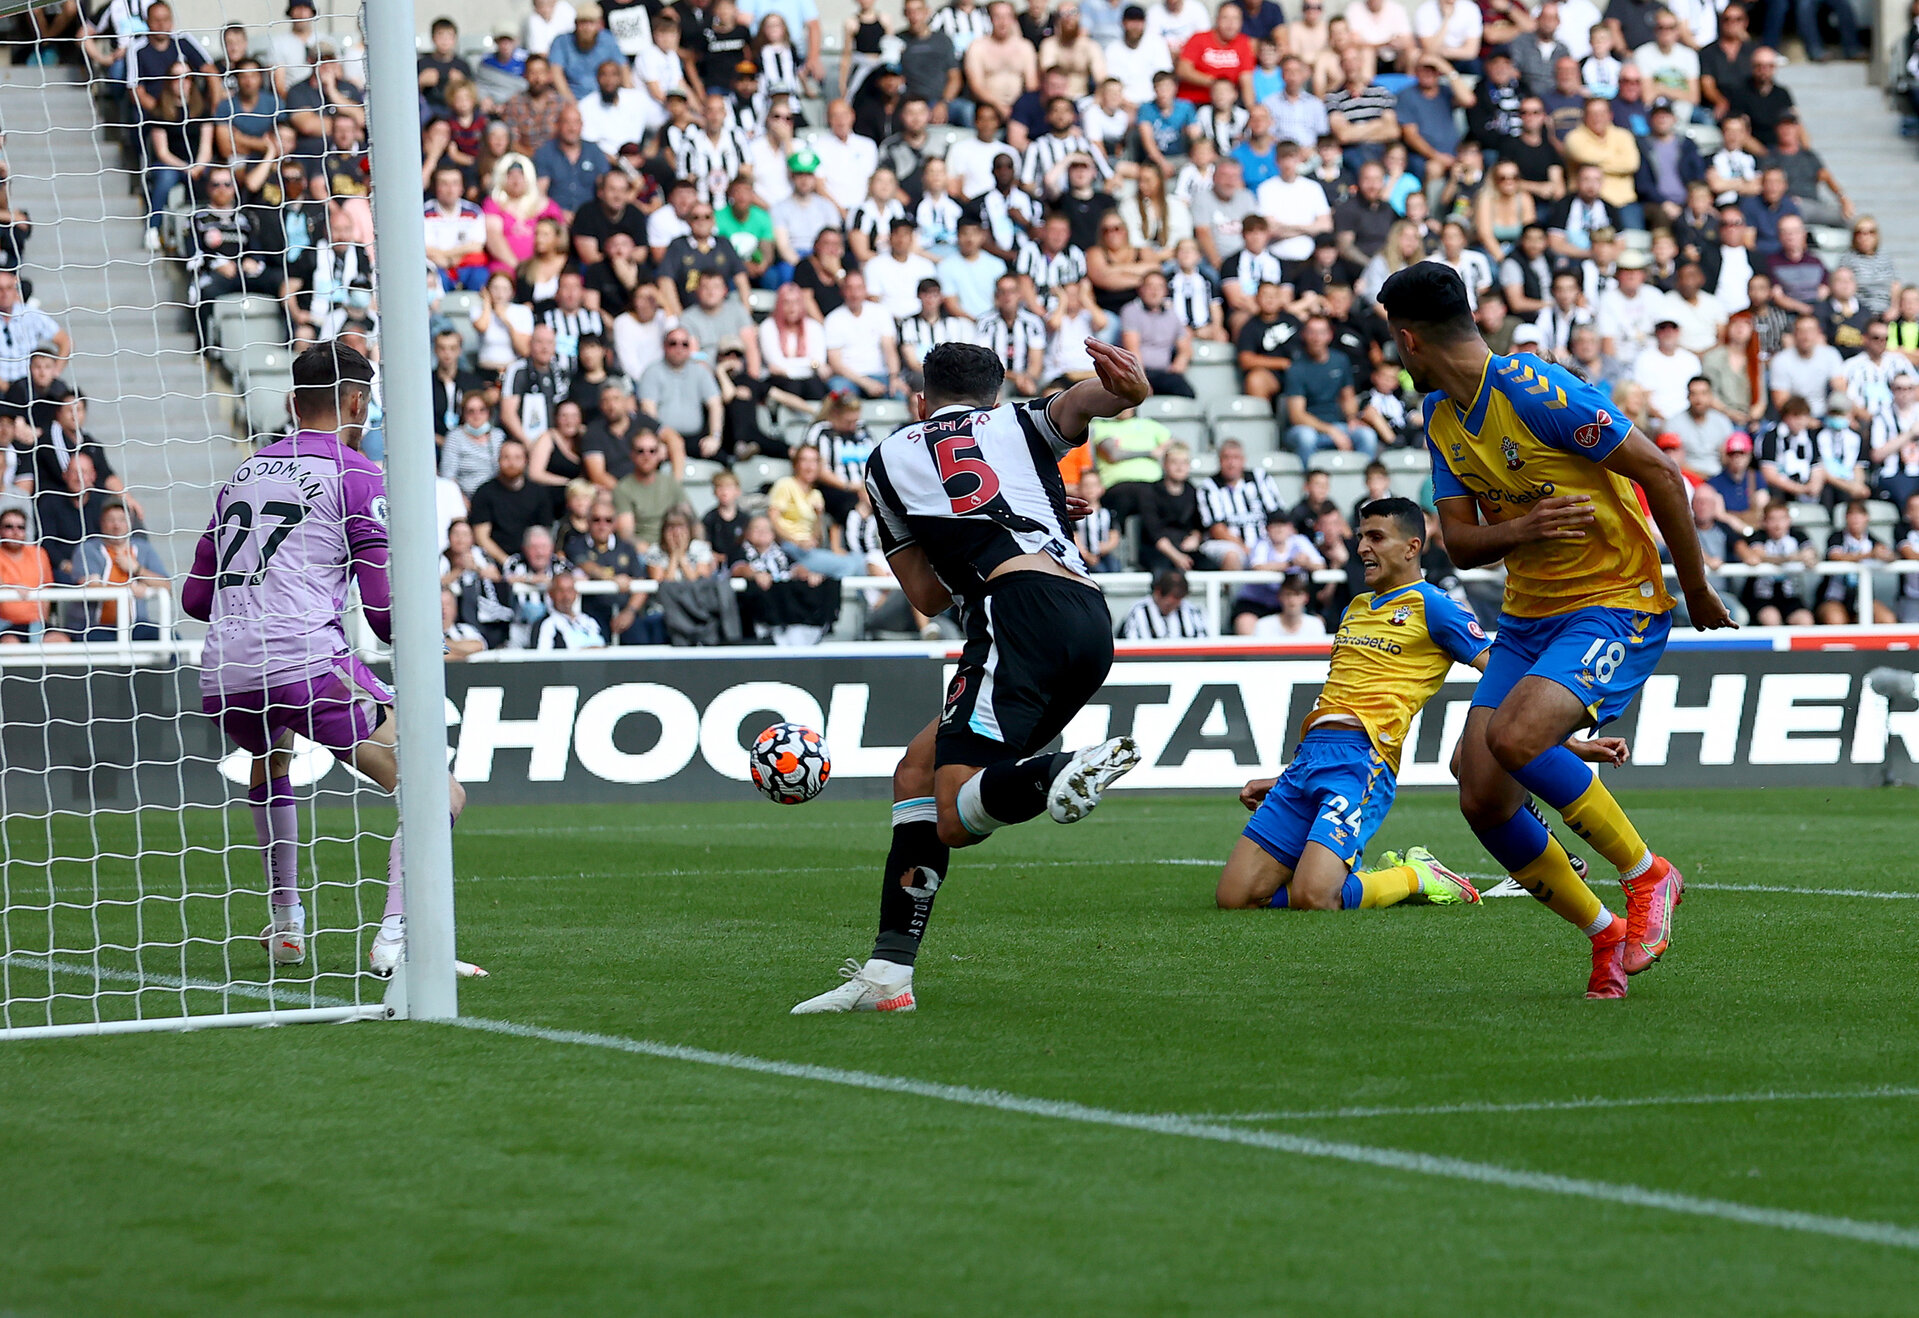 NEWCASTLE UPON TYNE, ENGLAND - AUGUST 28: Mohamed Elyounoussi of Southampton scores to make it 1-1 during the Premier League match between Newcastle United  and  Southampton at St. James Park on August 28, 2021 in Newcastle upon Tyne, England. (Photo by Matt Watson/Southampton FC via Getty Images)